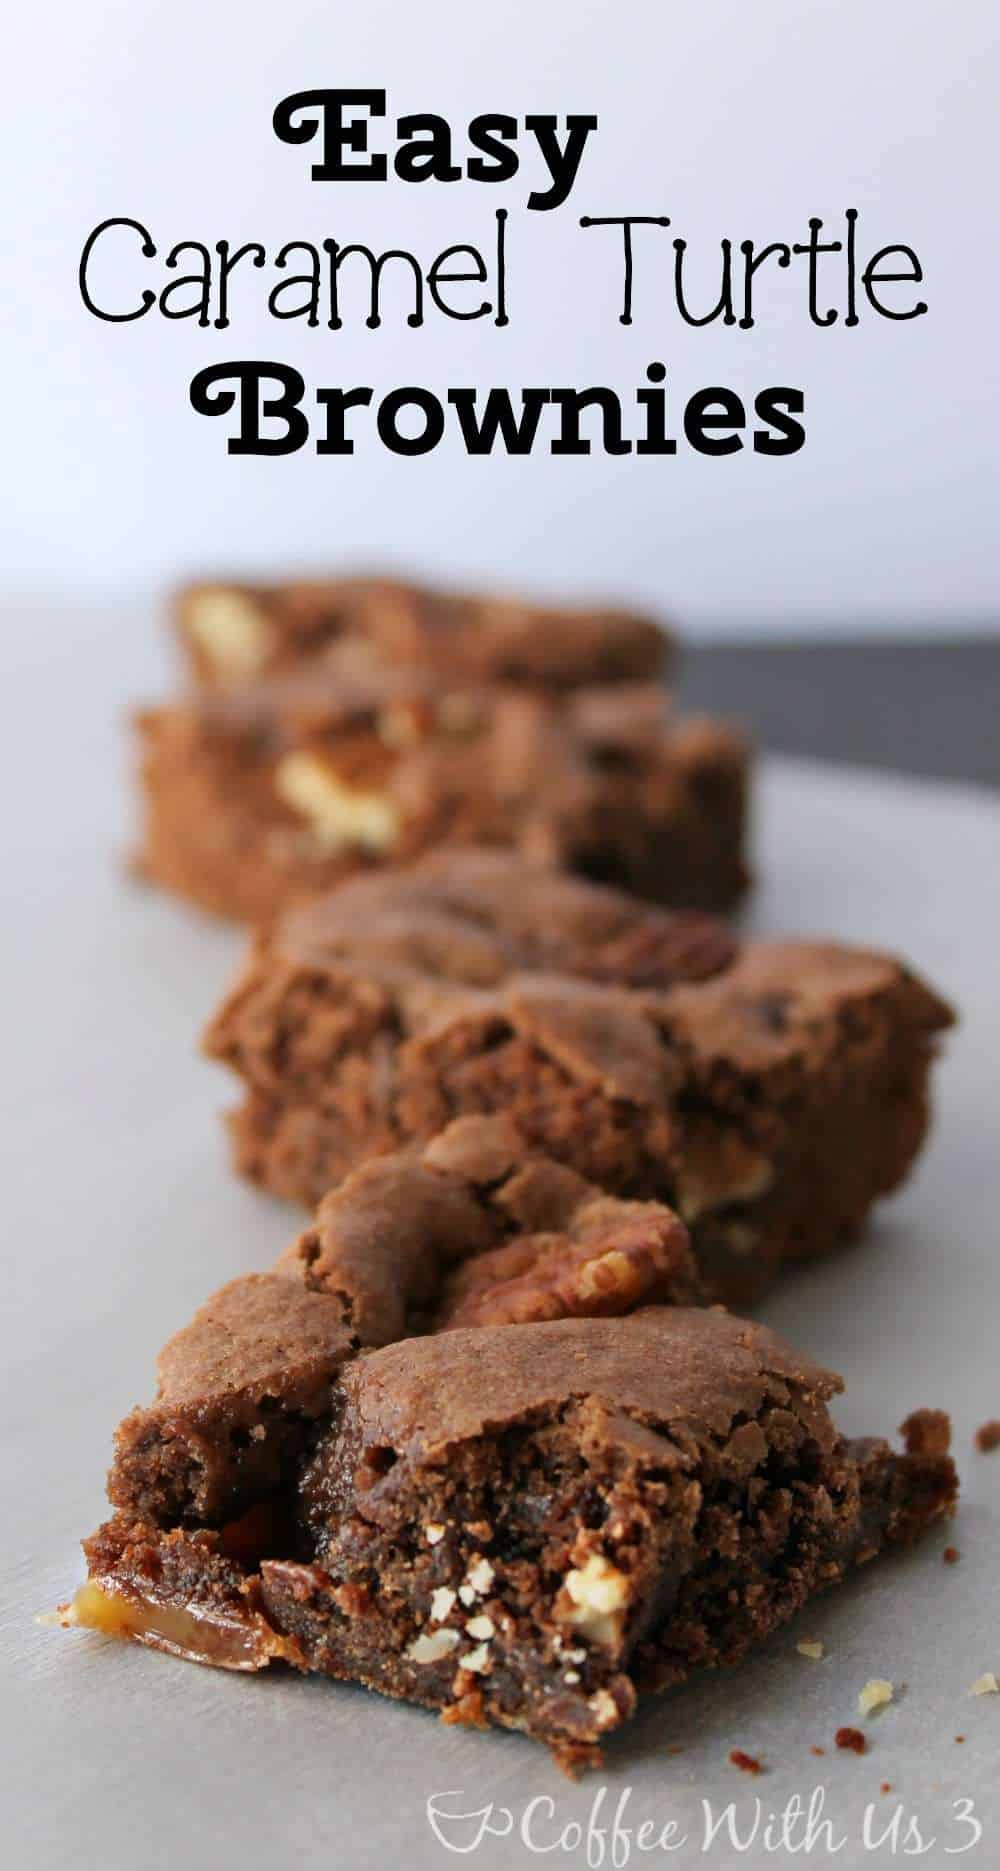 Easy Caramel Turtle Brownies | Coffee With Us 3 - The easiest from-scratch brownie recipe around! Gooey caramel and crunchy pecans!